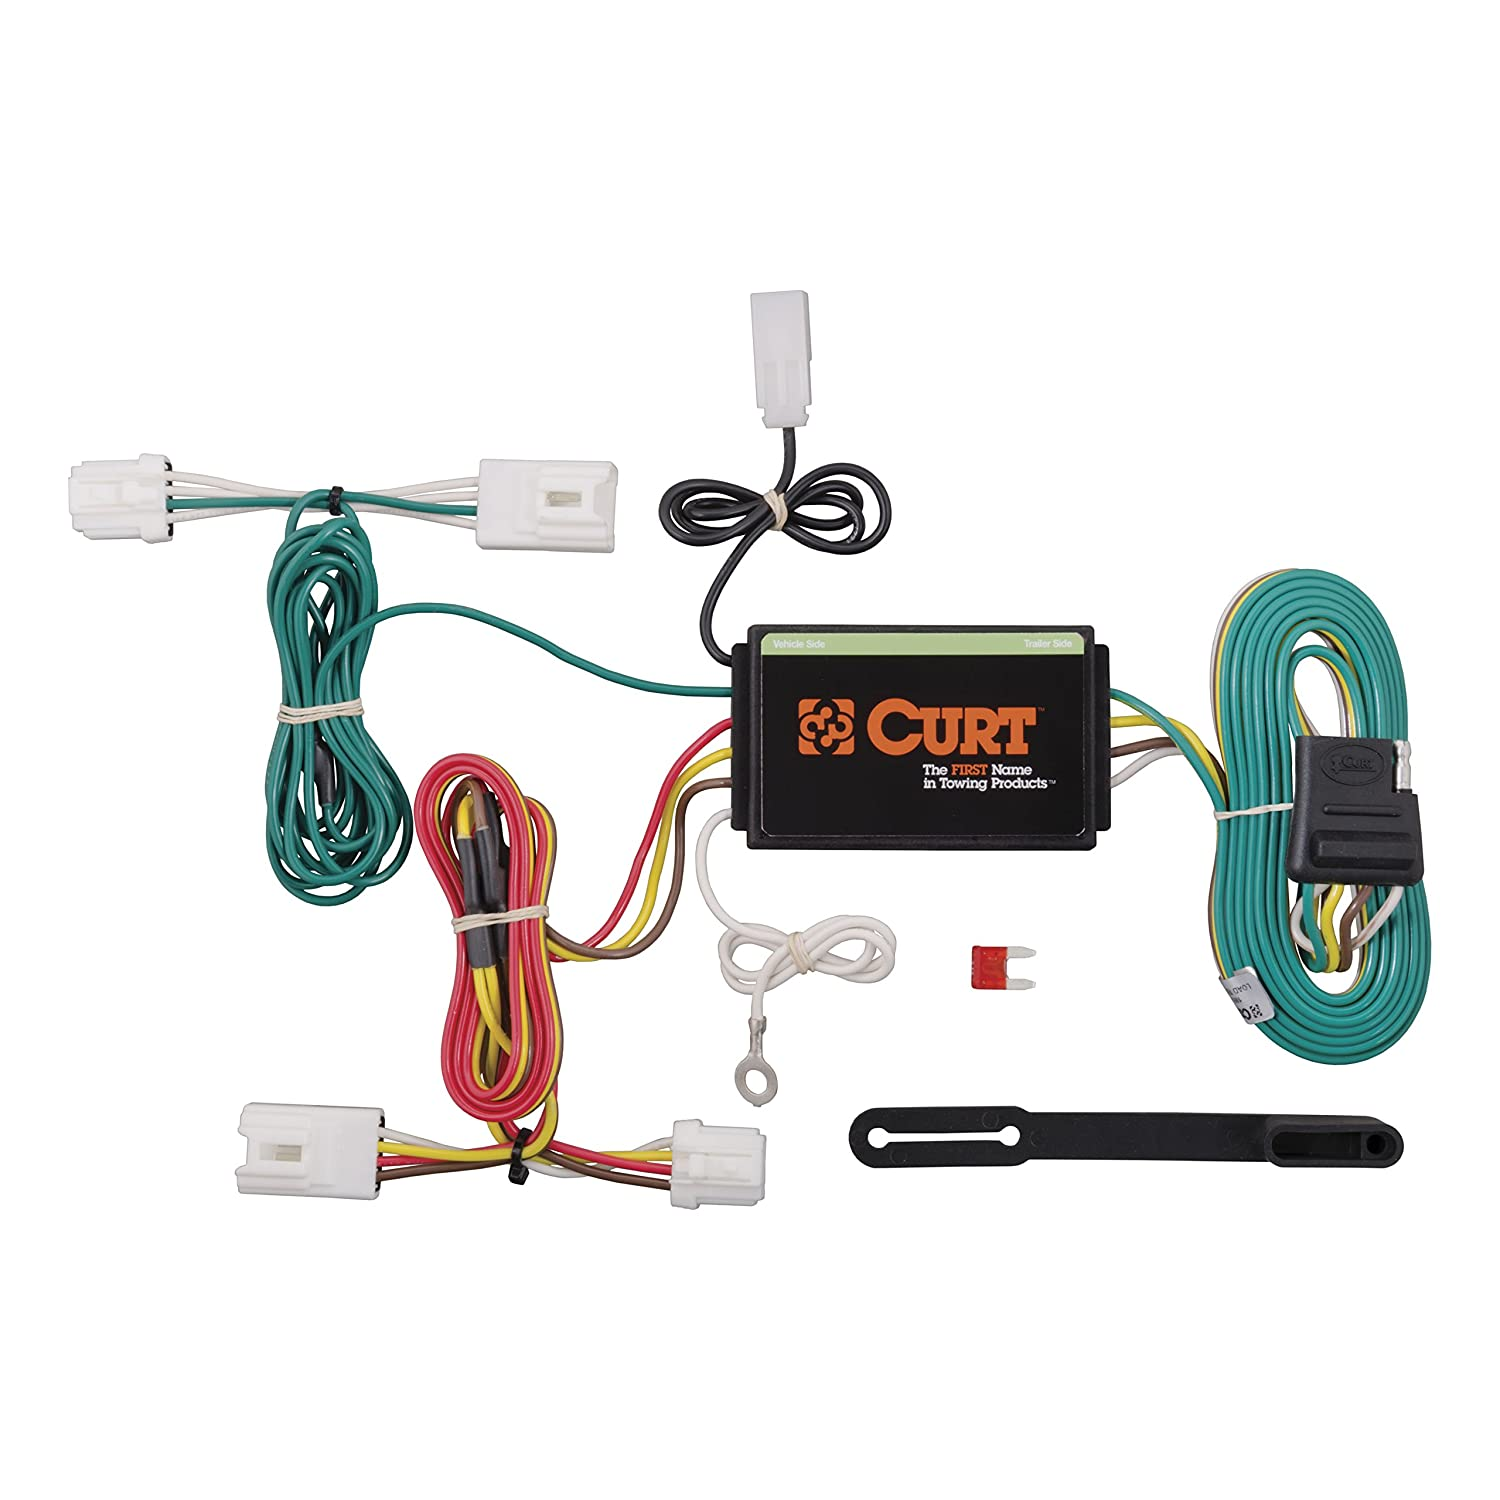 811kFXfDZwL._SL1500_ amazon com curt 55571 custom wiring harness automotive OEM Wiring Harness Connectors at bayanpartner.co